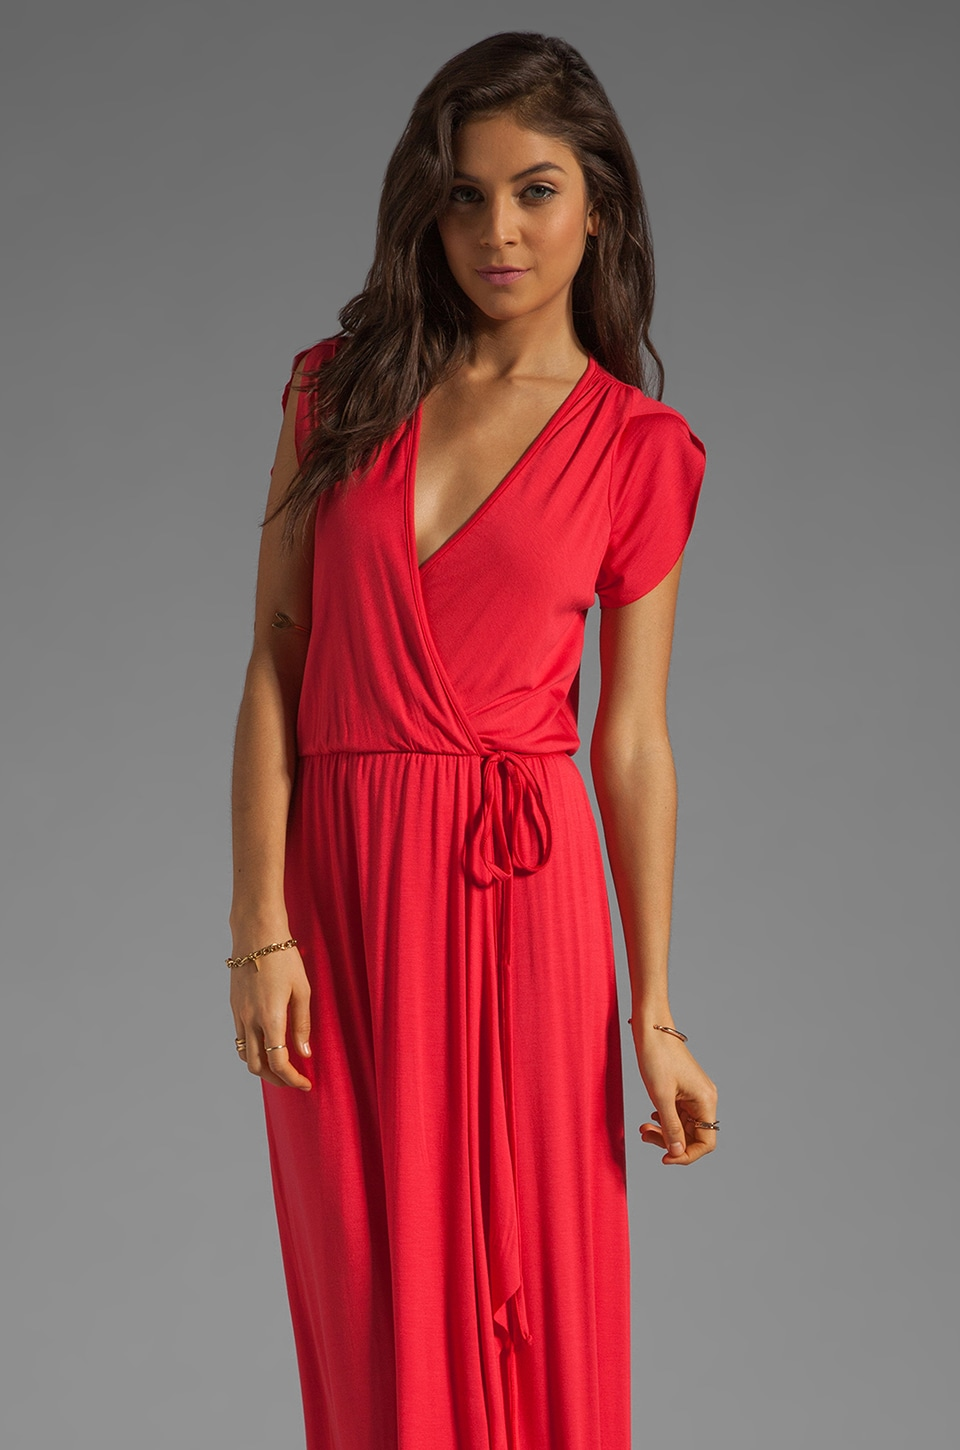 Rachel Pally Perpetua Wrap Dress in Granita